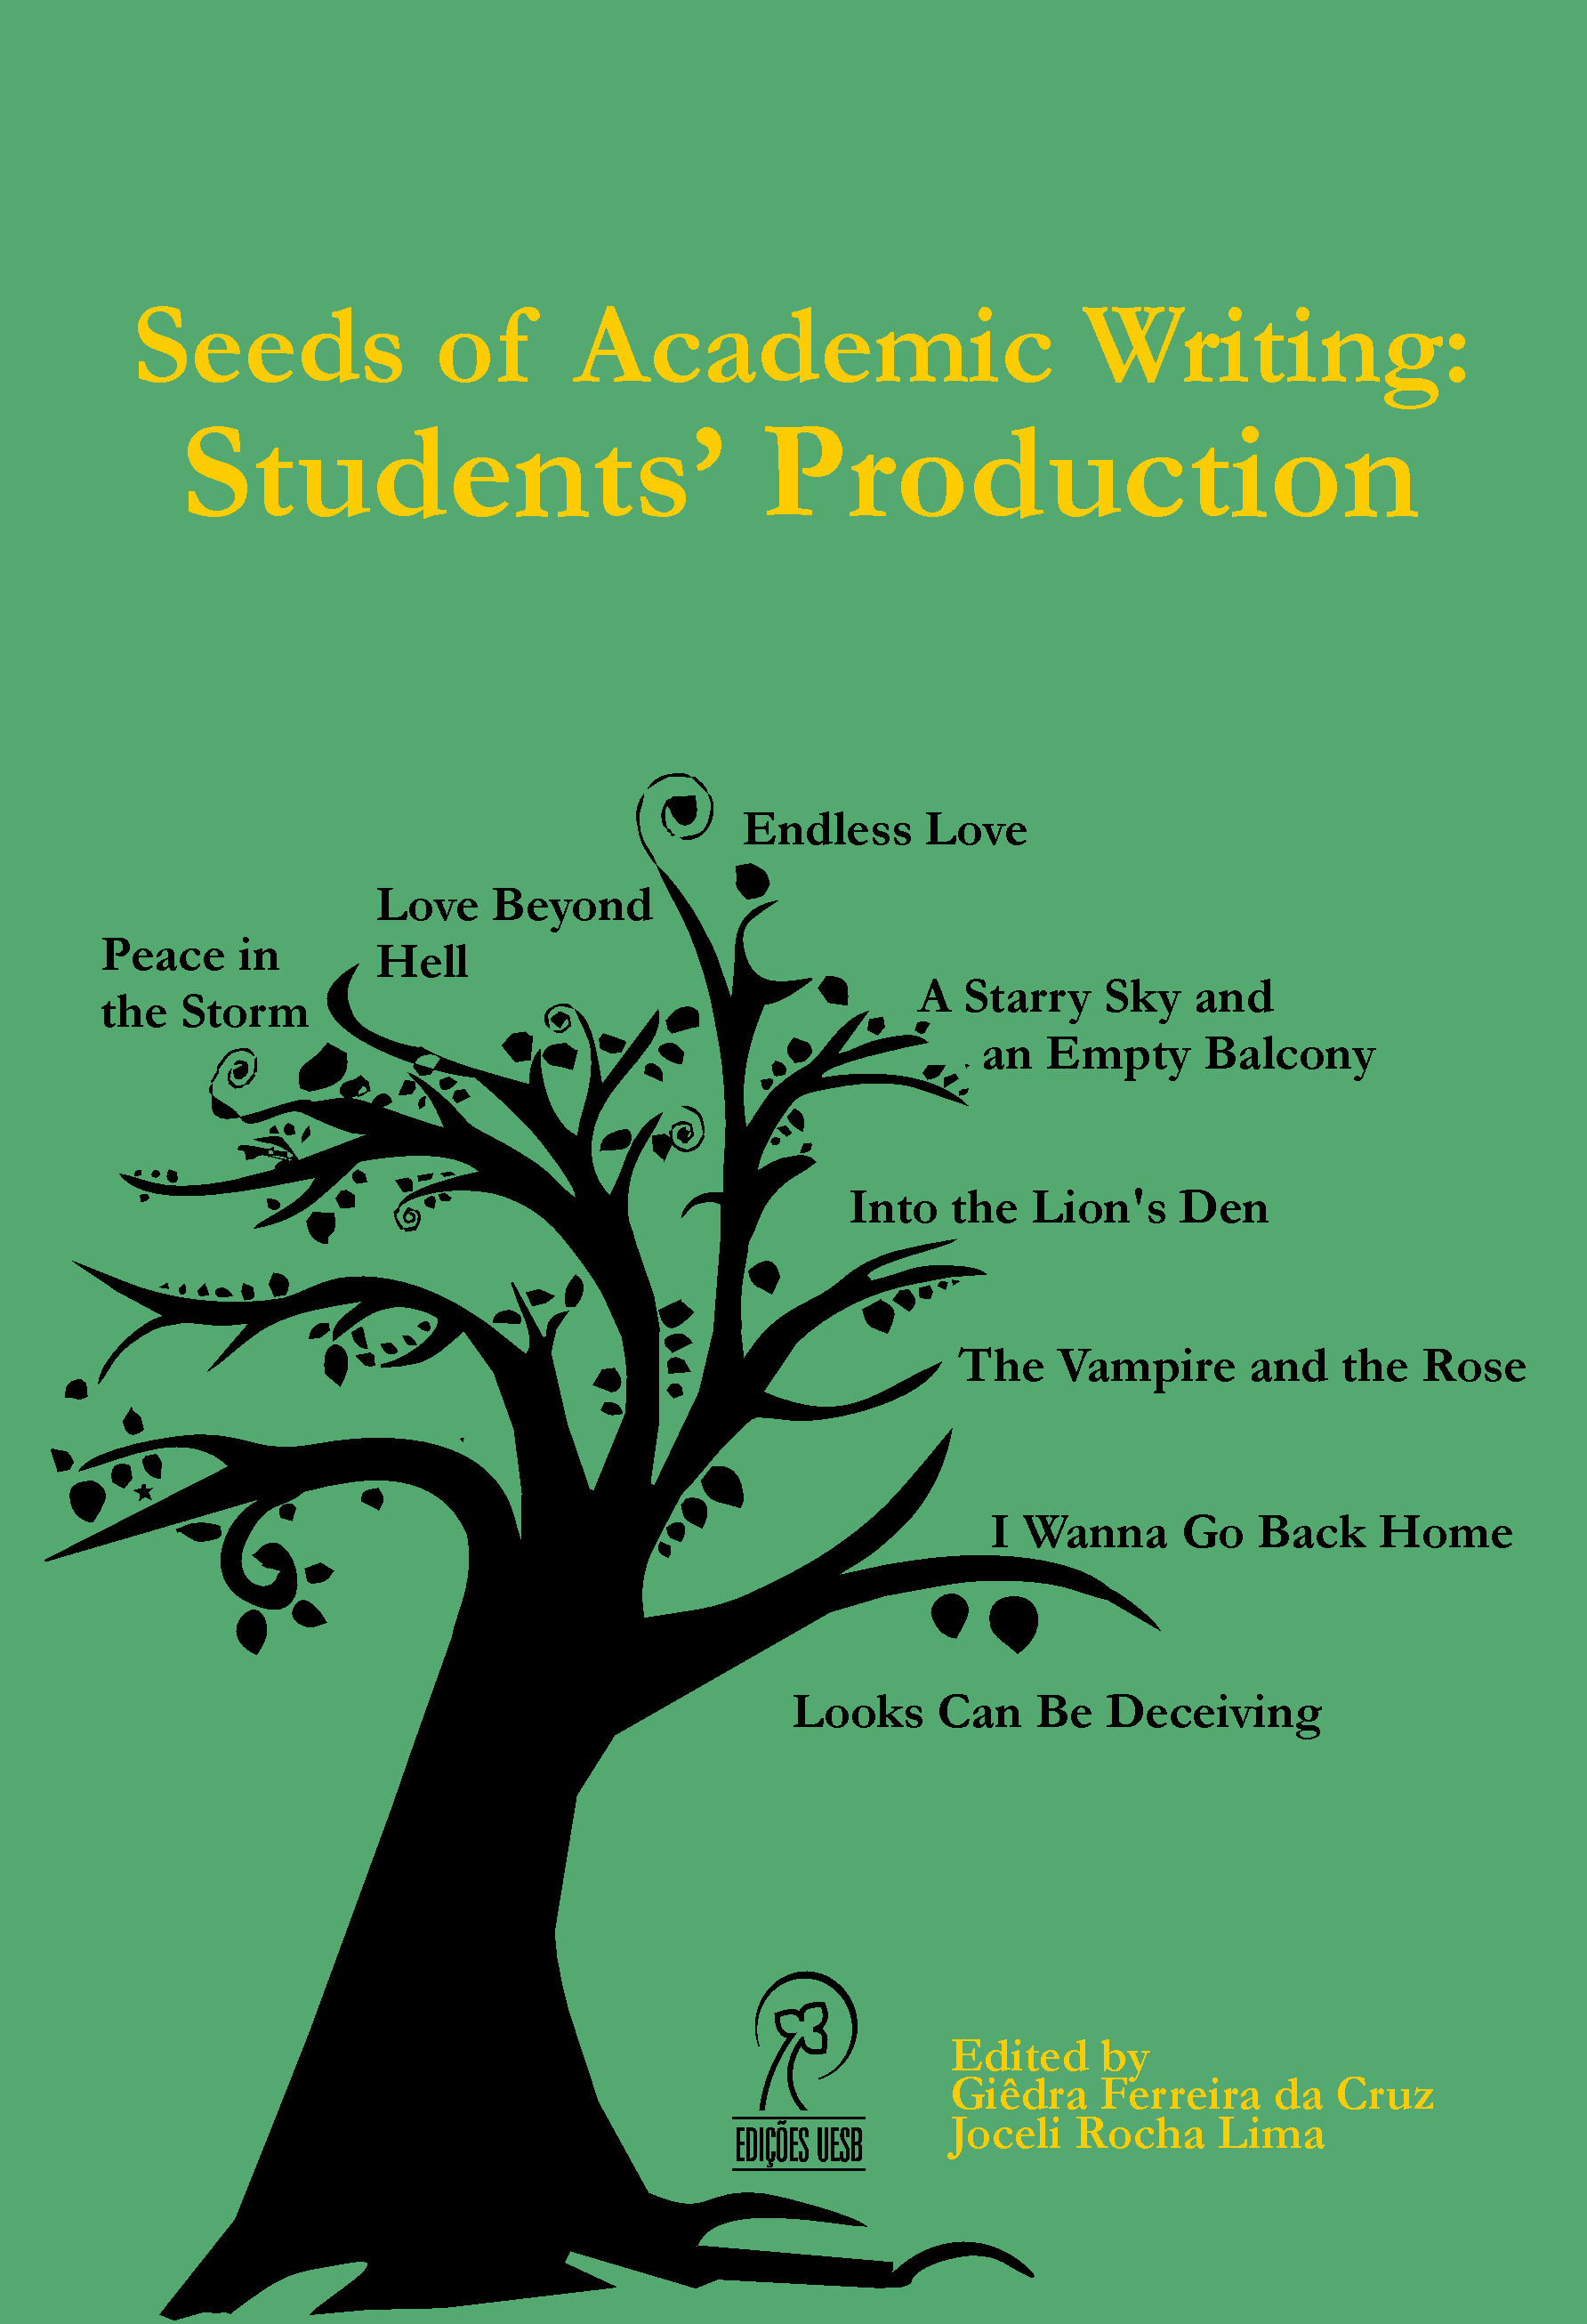 Seeds of Academic Writing: Students' Production